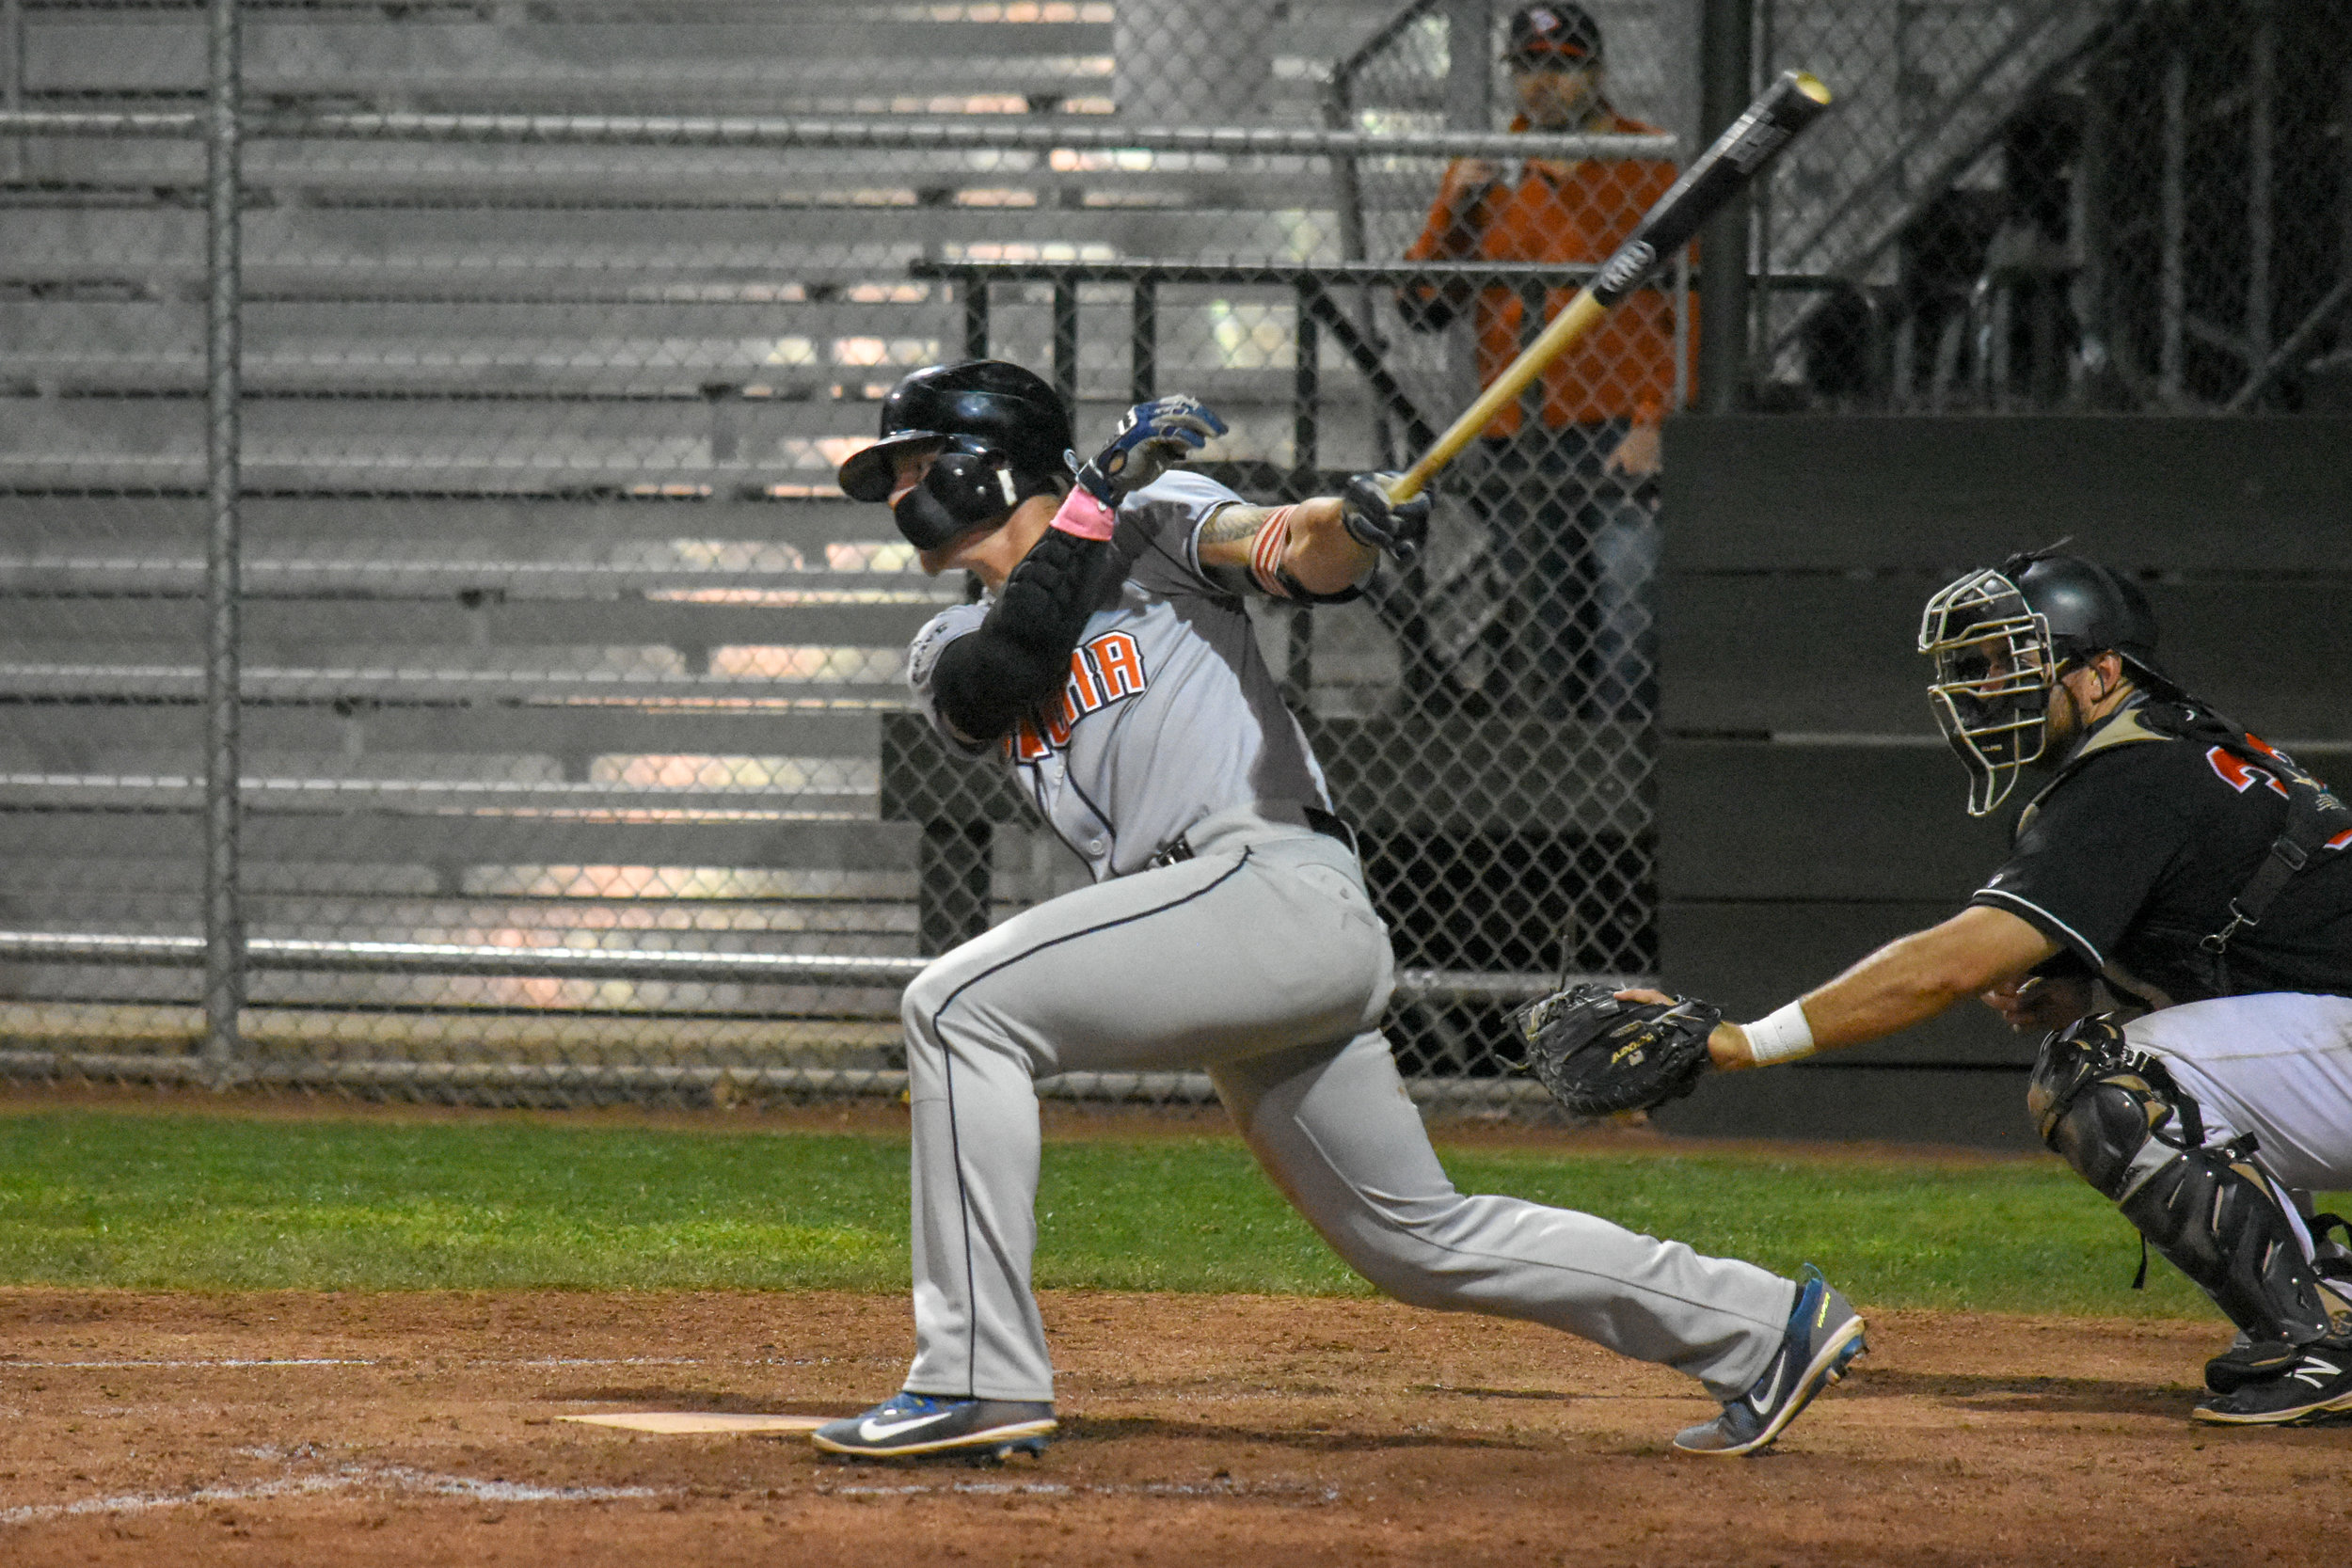 Kam Stewart drives in the go-ahead run in the ninth inning of the Sonoma Stompers game against the Pittsburg Diamonds, August 22, 2018 in Pittsburg, Calif.(James W. Toy III / Sonoma Stompers)